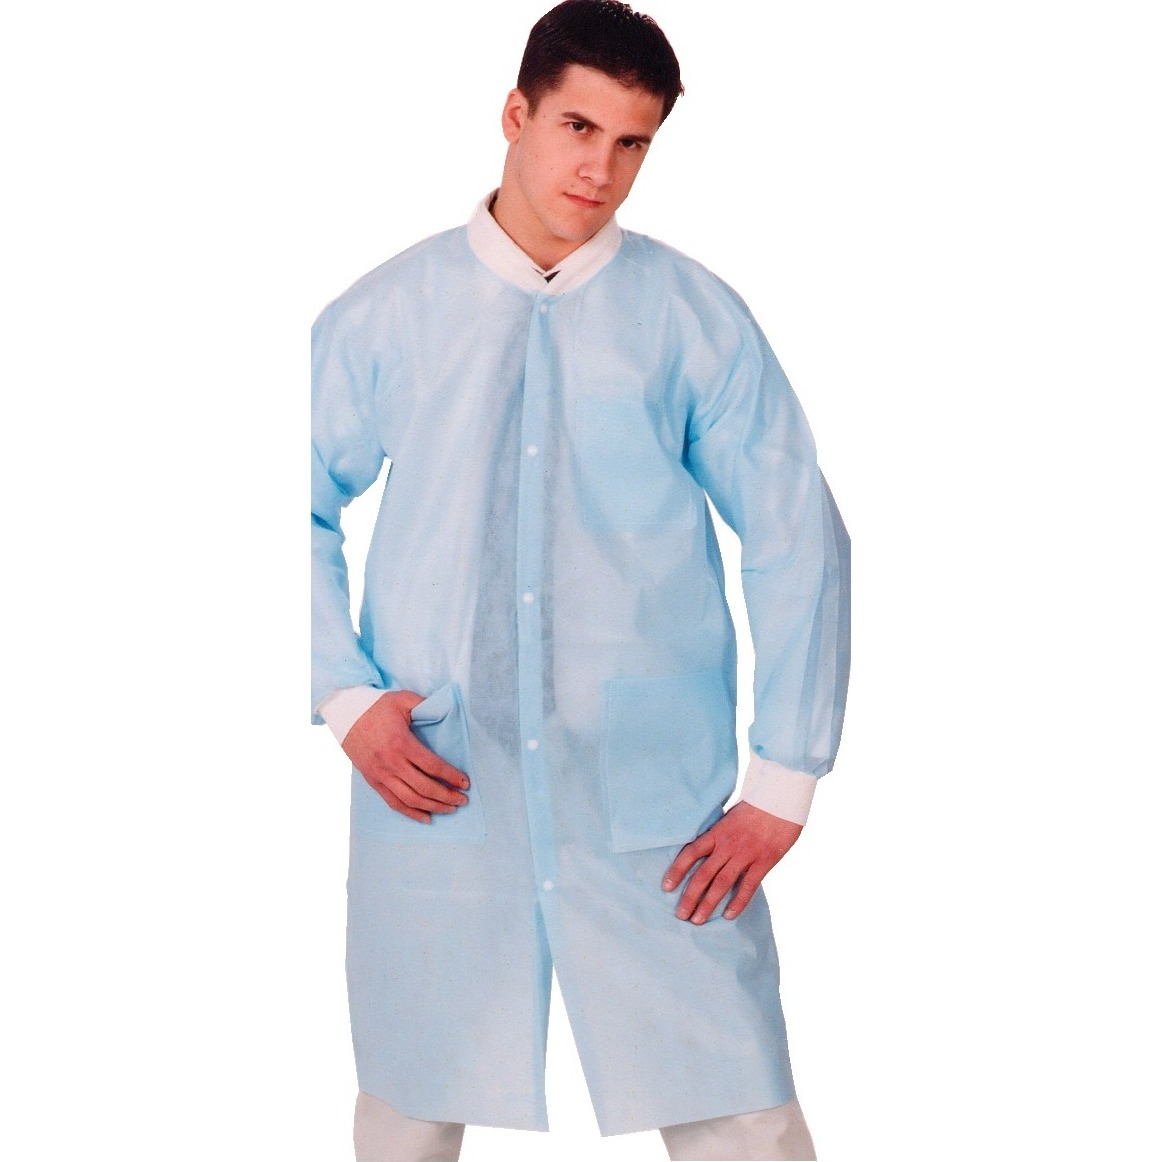 9508197 Protection Lab Coats Small, Blue, 10/Pkg, 3460-LBS